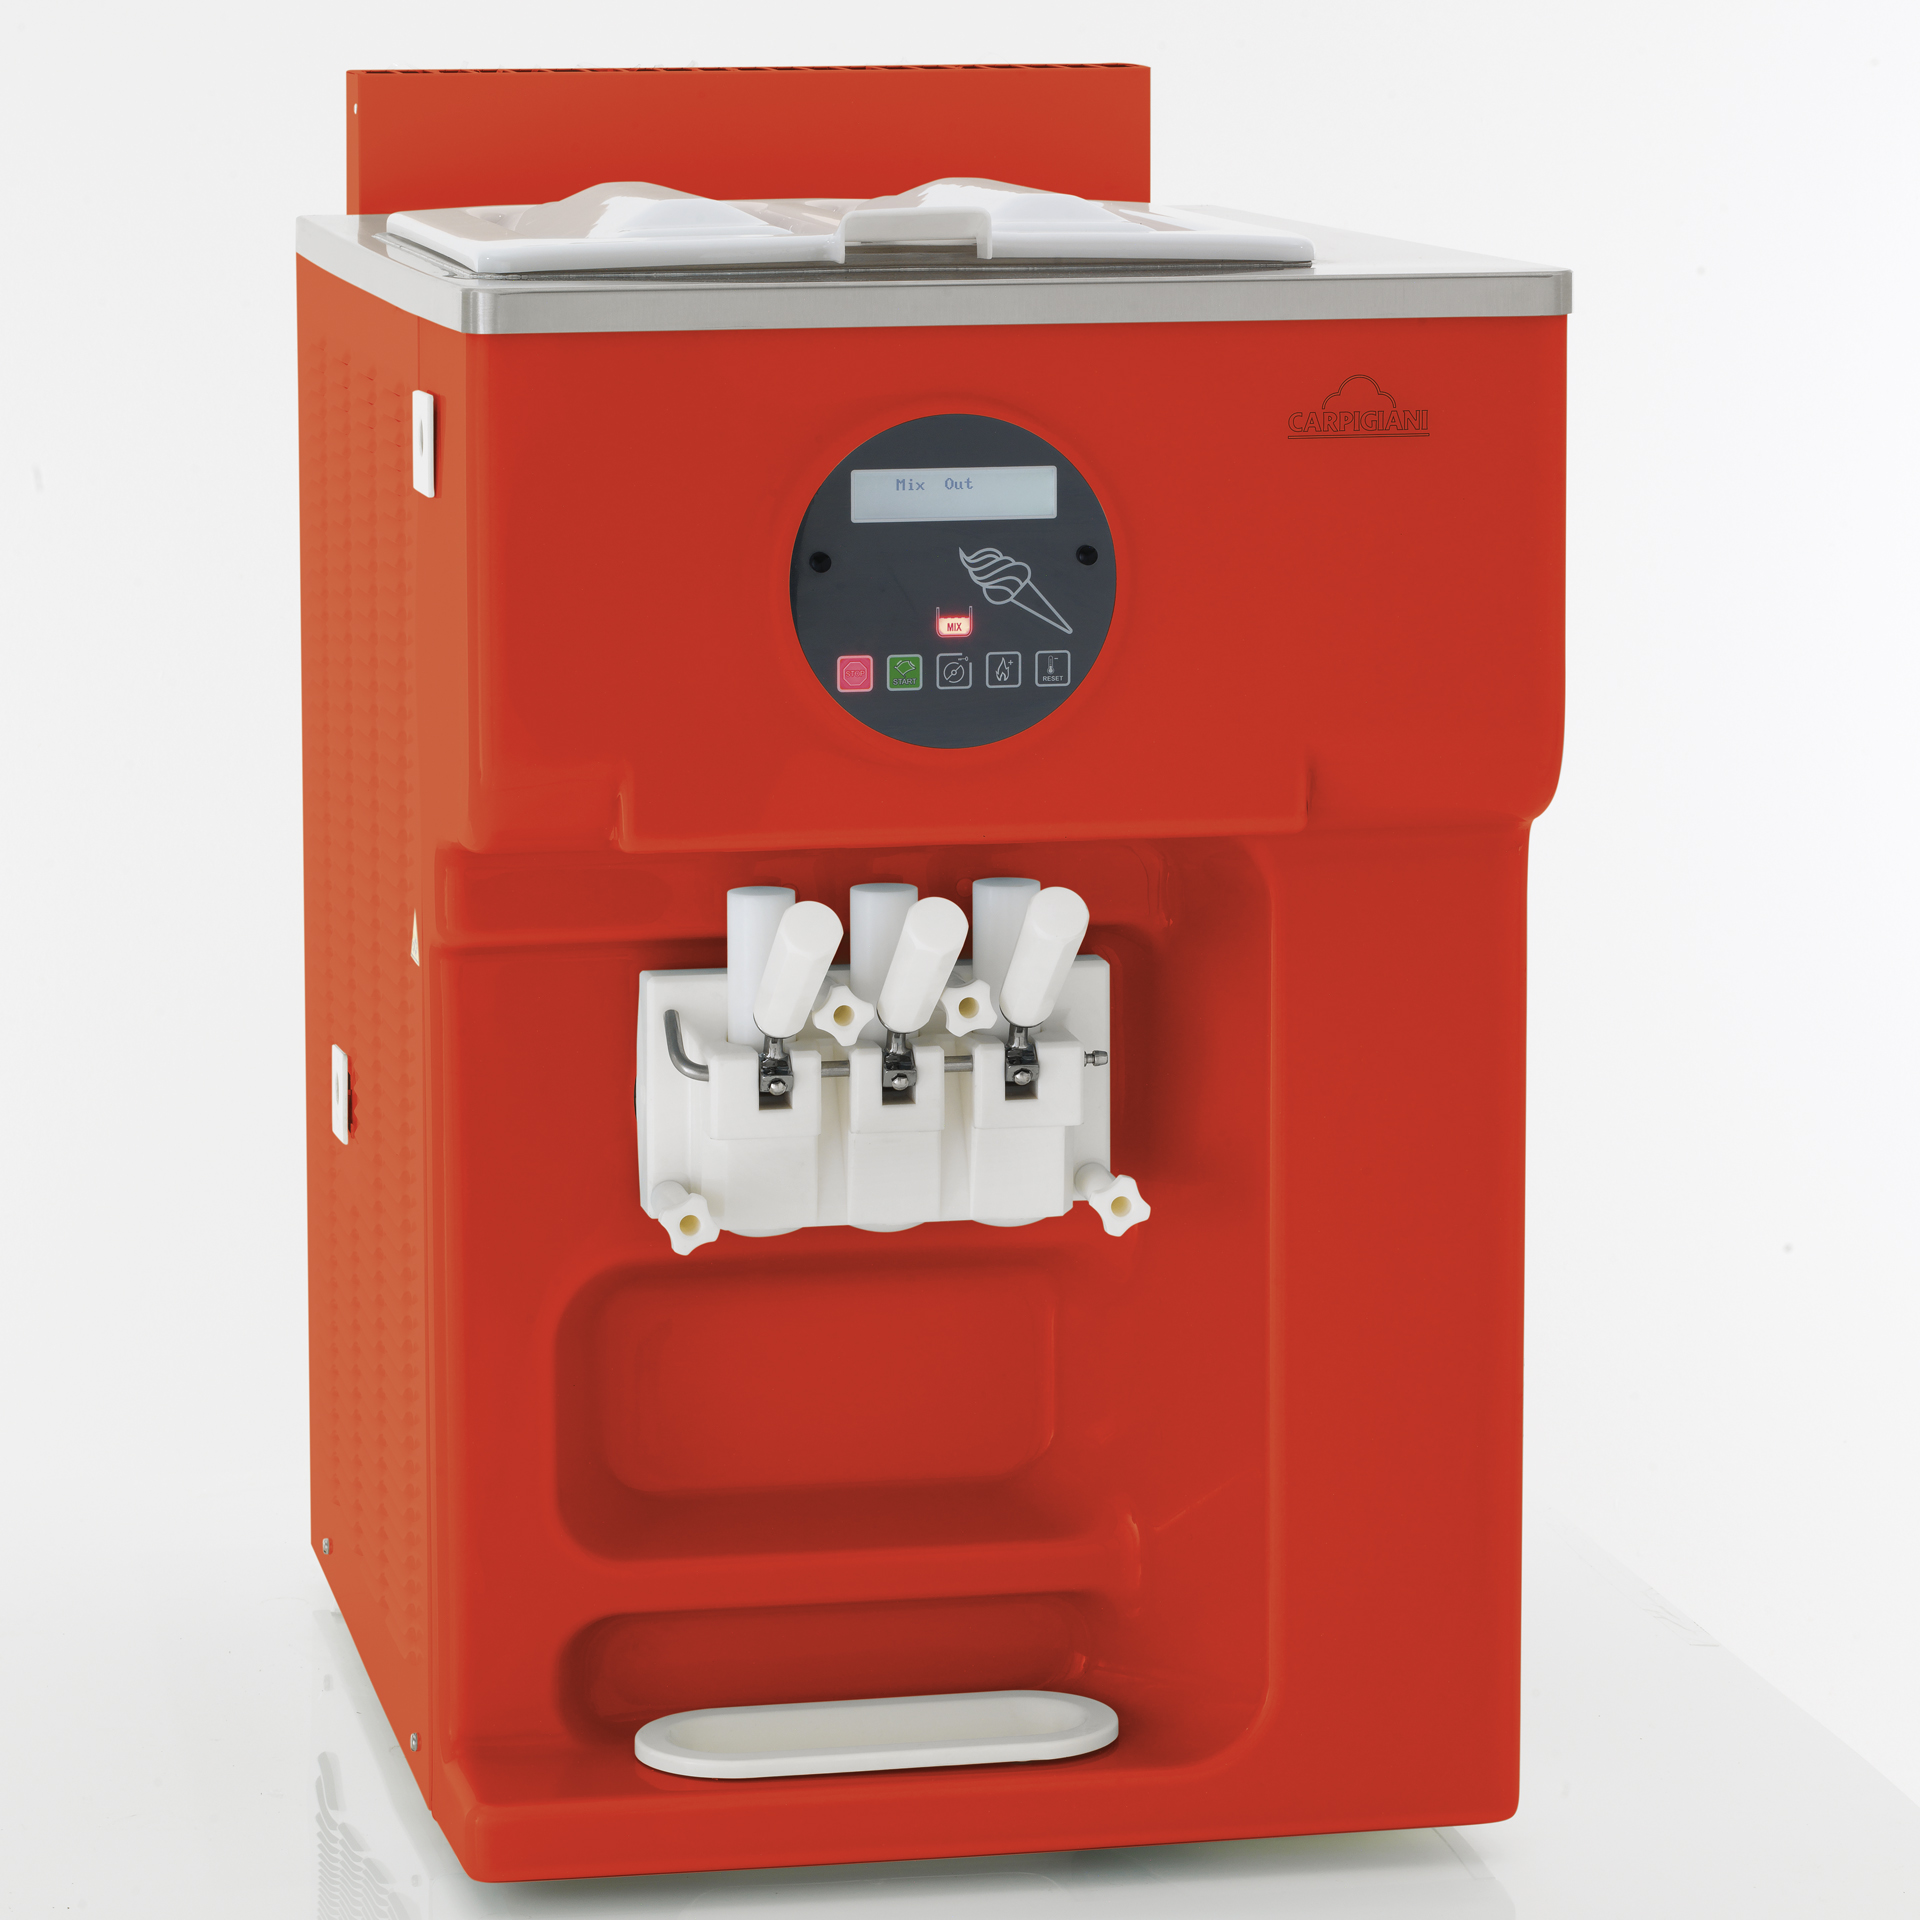 Carpigiani Soft Serve Machine - Total Only You Personalization